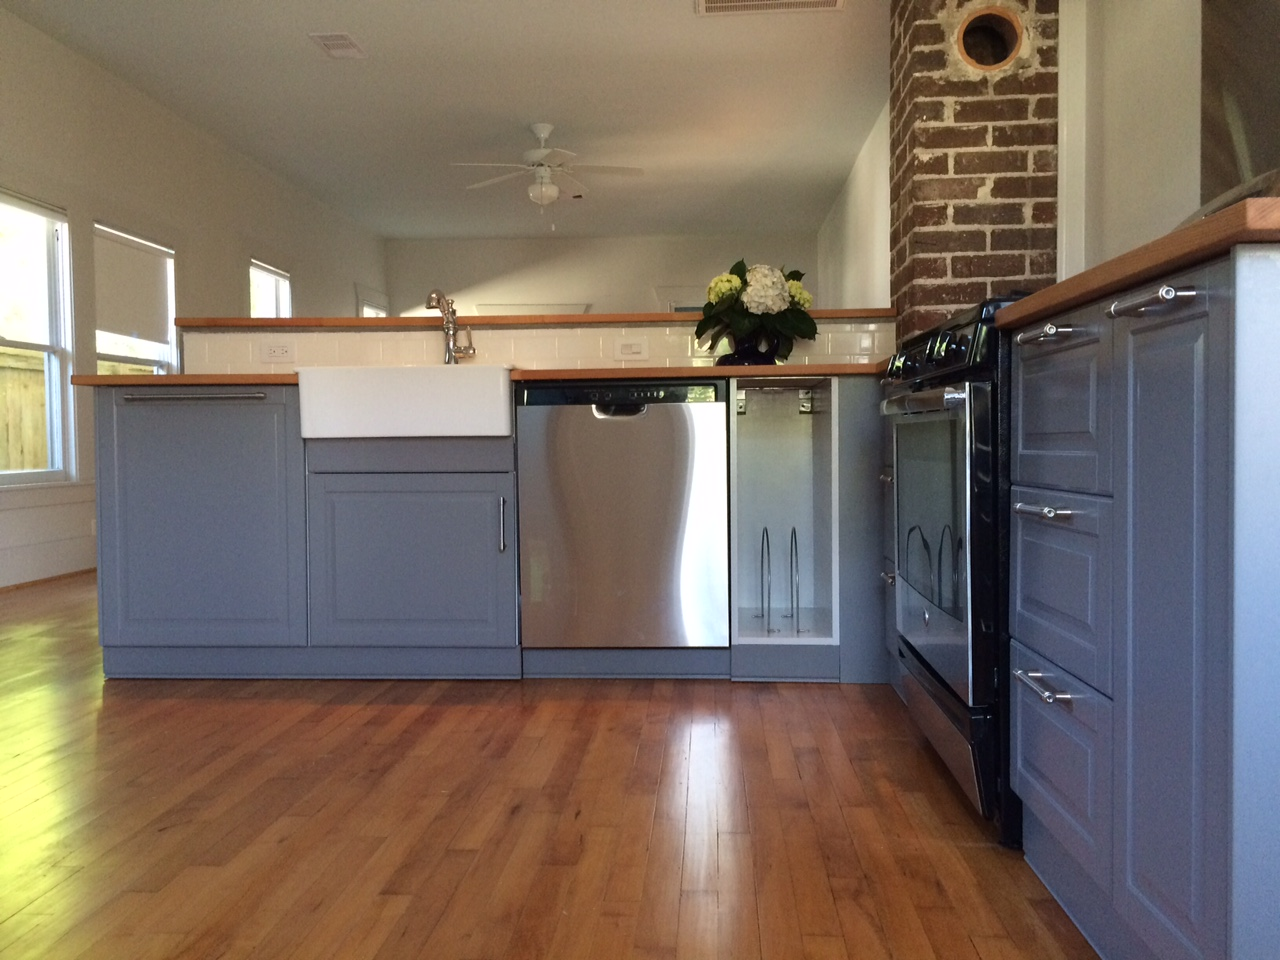 An ikea kitchen renovation saves this 1920s bungalow home for Bungalow style kitchen cabinets